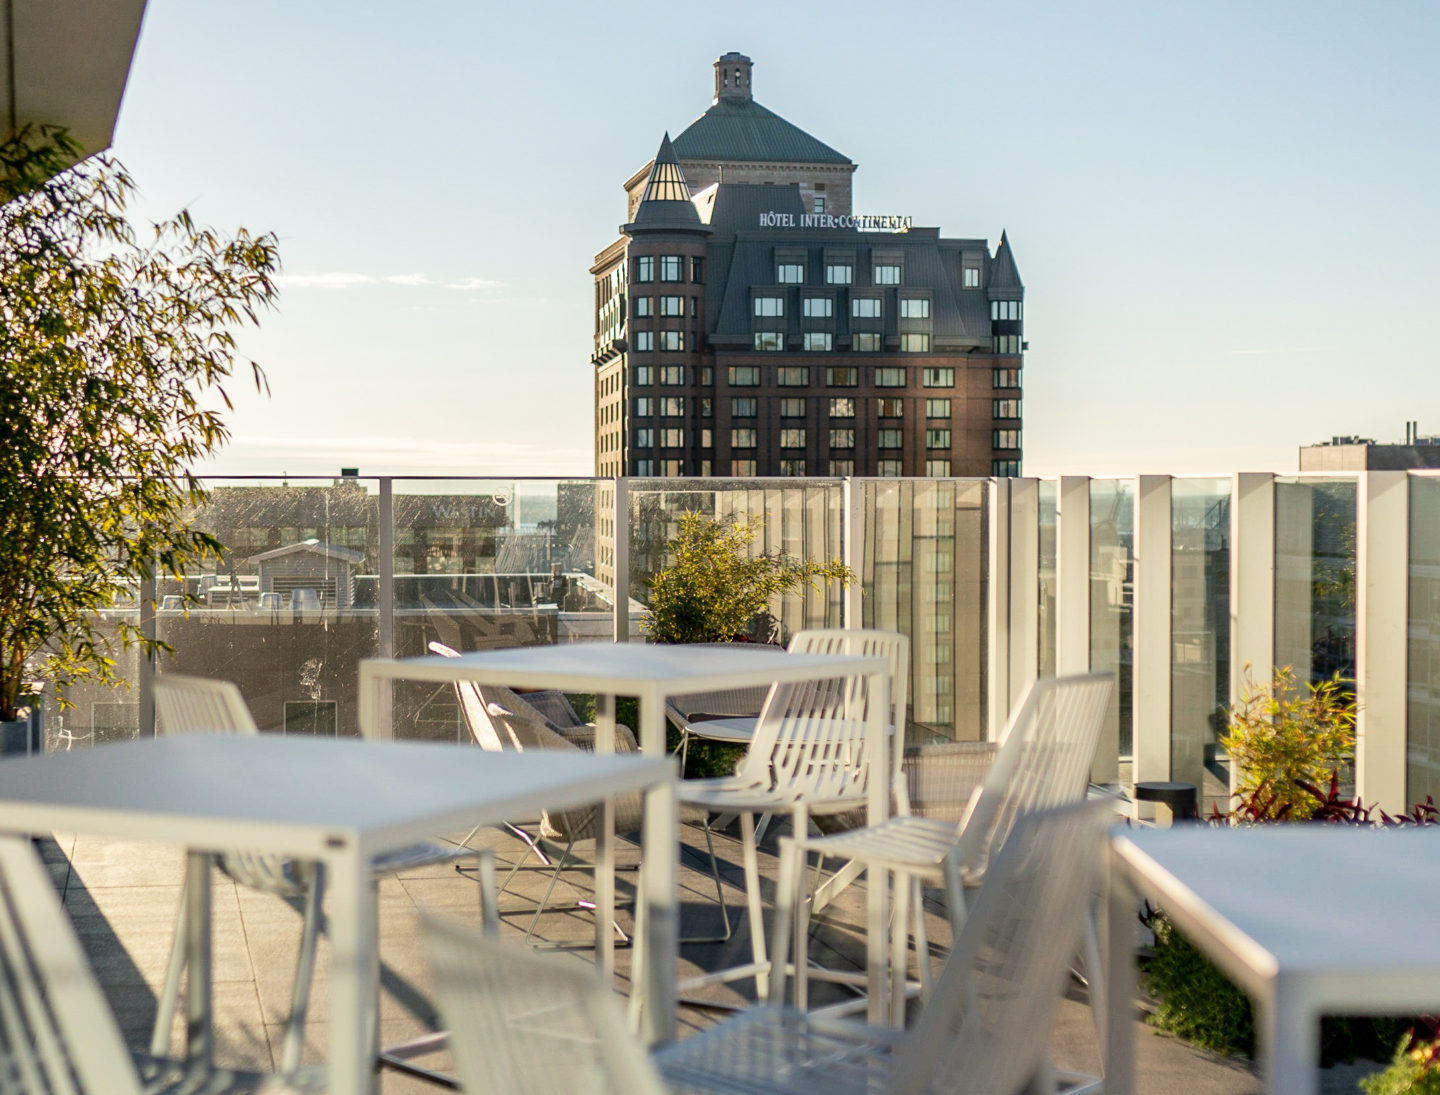 My Stay At Hotel Monville - Montreal, Quebec | The Jeneralist